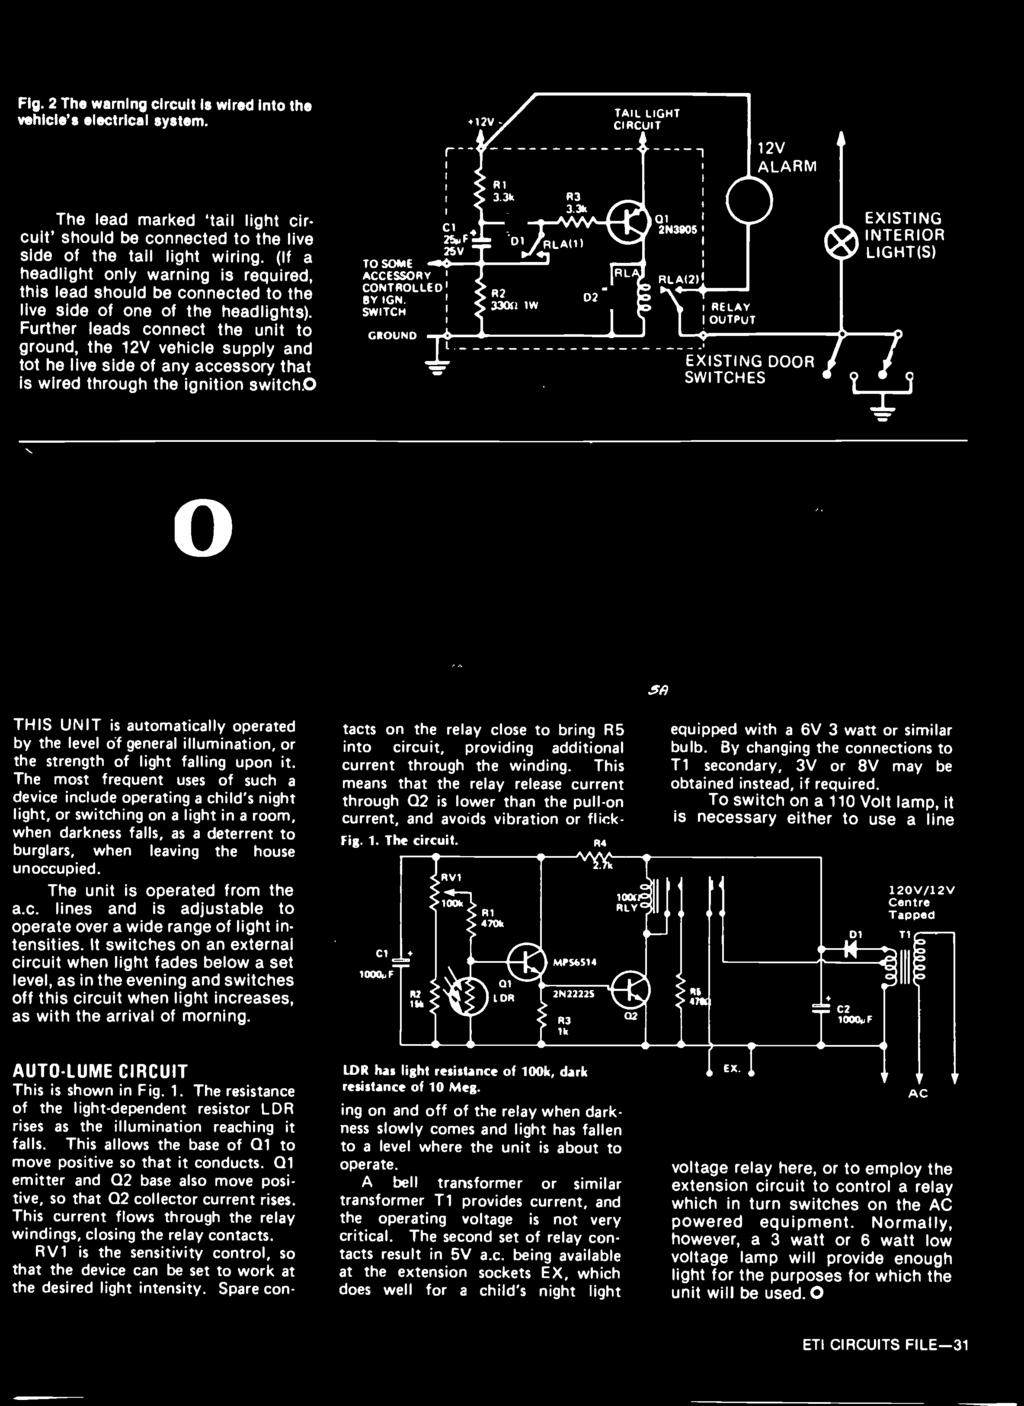 5395 Aspects Audio Design A Large Articles Tackle Are How Adding Hysteresis To Comparator Circuit Basiccircuit Further Leads Connect The Unit Ground 12v Vehicle Supply And Tot He Live